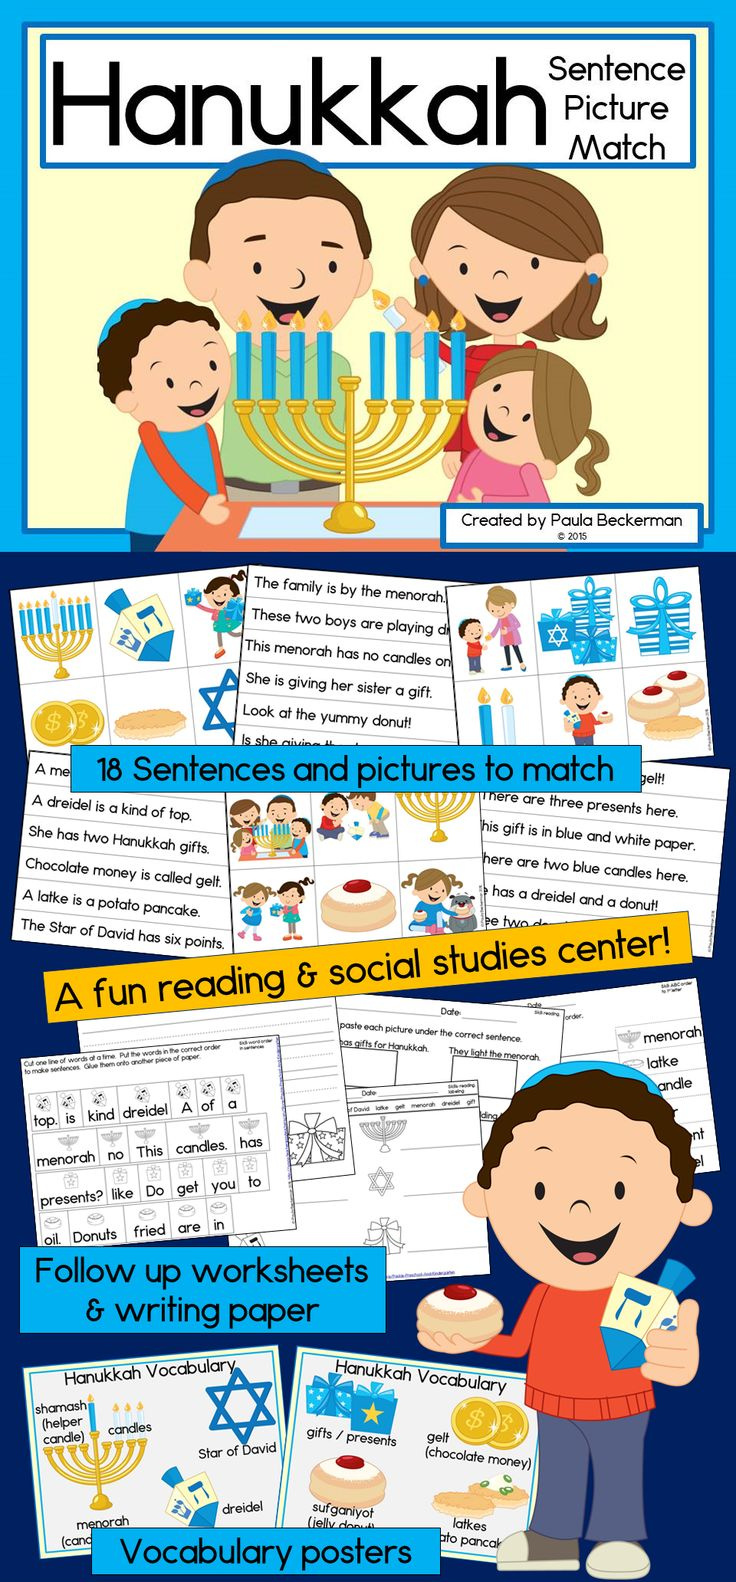 Learn about Hanukkah, the festival of lights, with this fun reading center! First or second grade students will read about the menorah, gelt, latkes, sufganiyot, dreidel, gifts, and more, then follow up with printable worksheets. TpT $